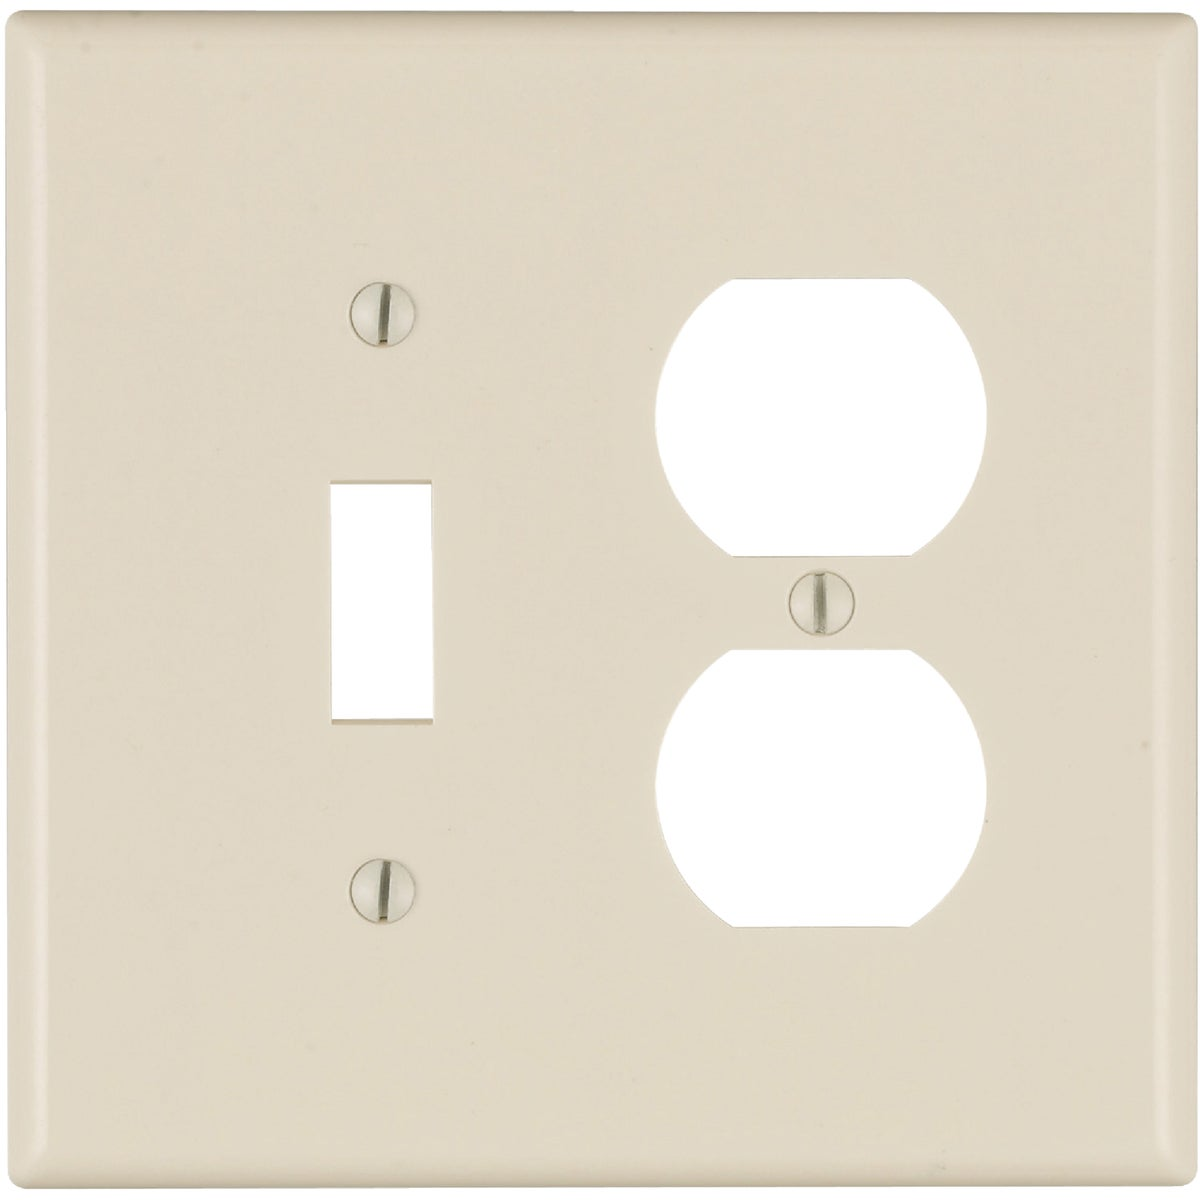 LT ALM COMBO WALLPLATE - 005-80505-00T by Leviton Mfg Co